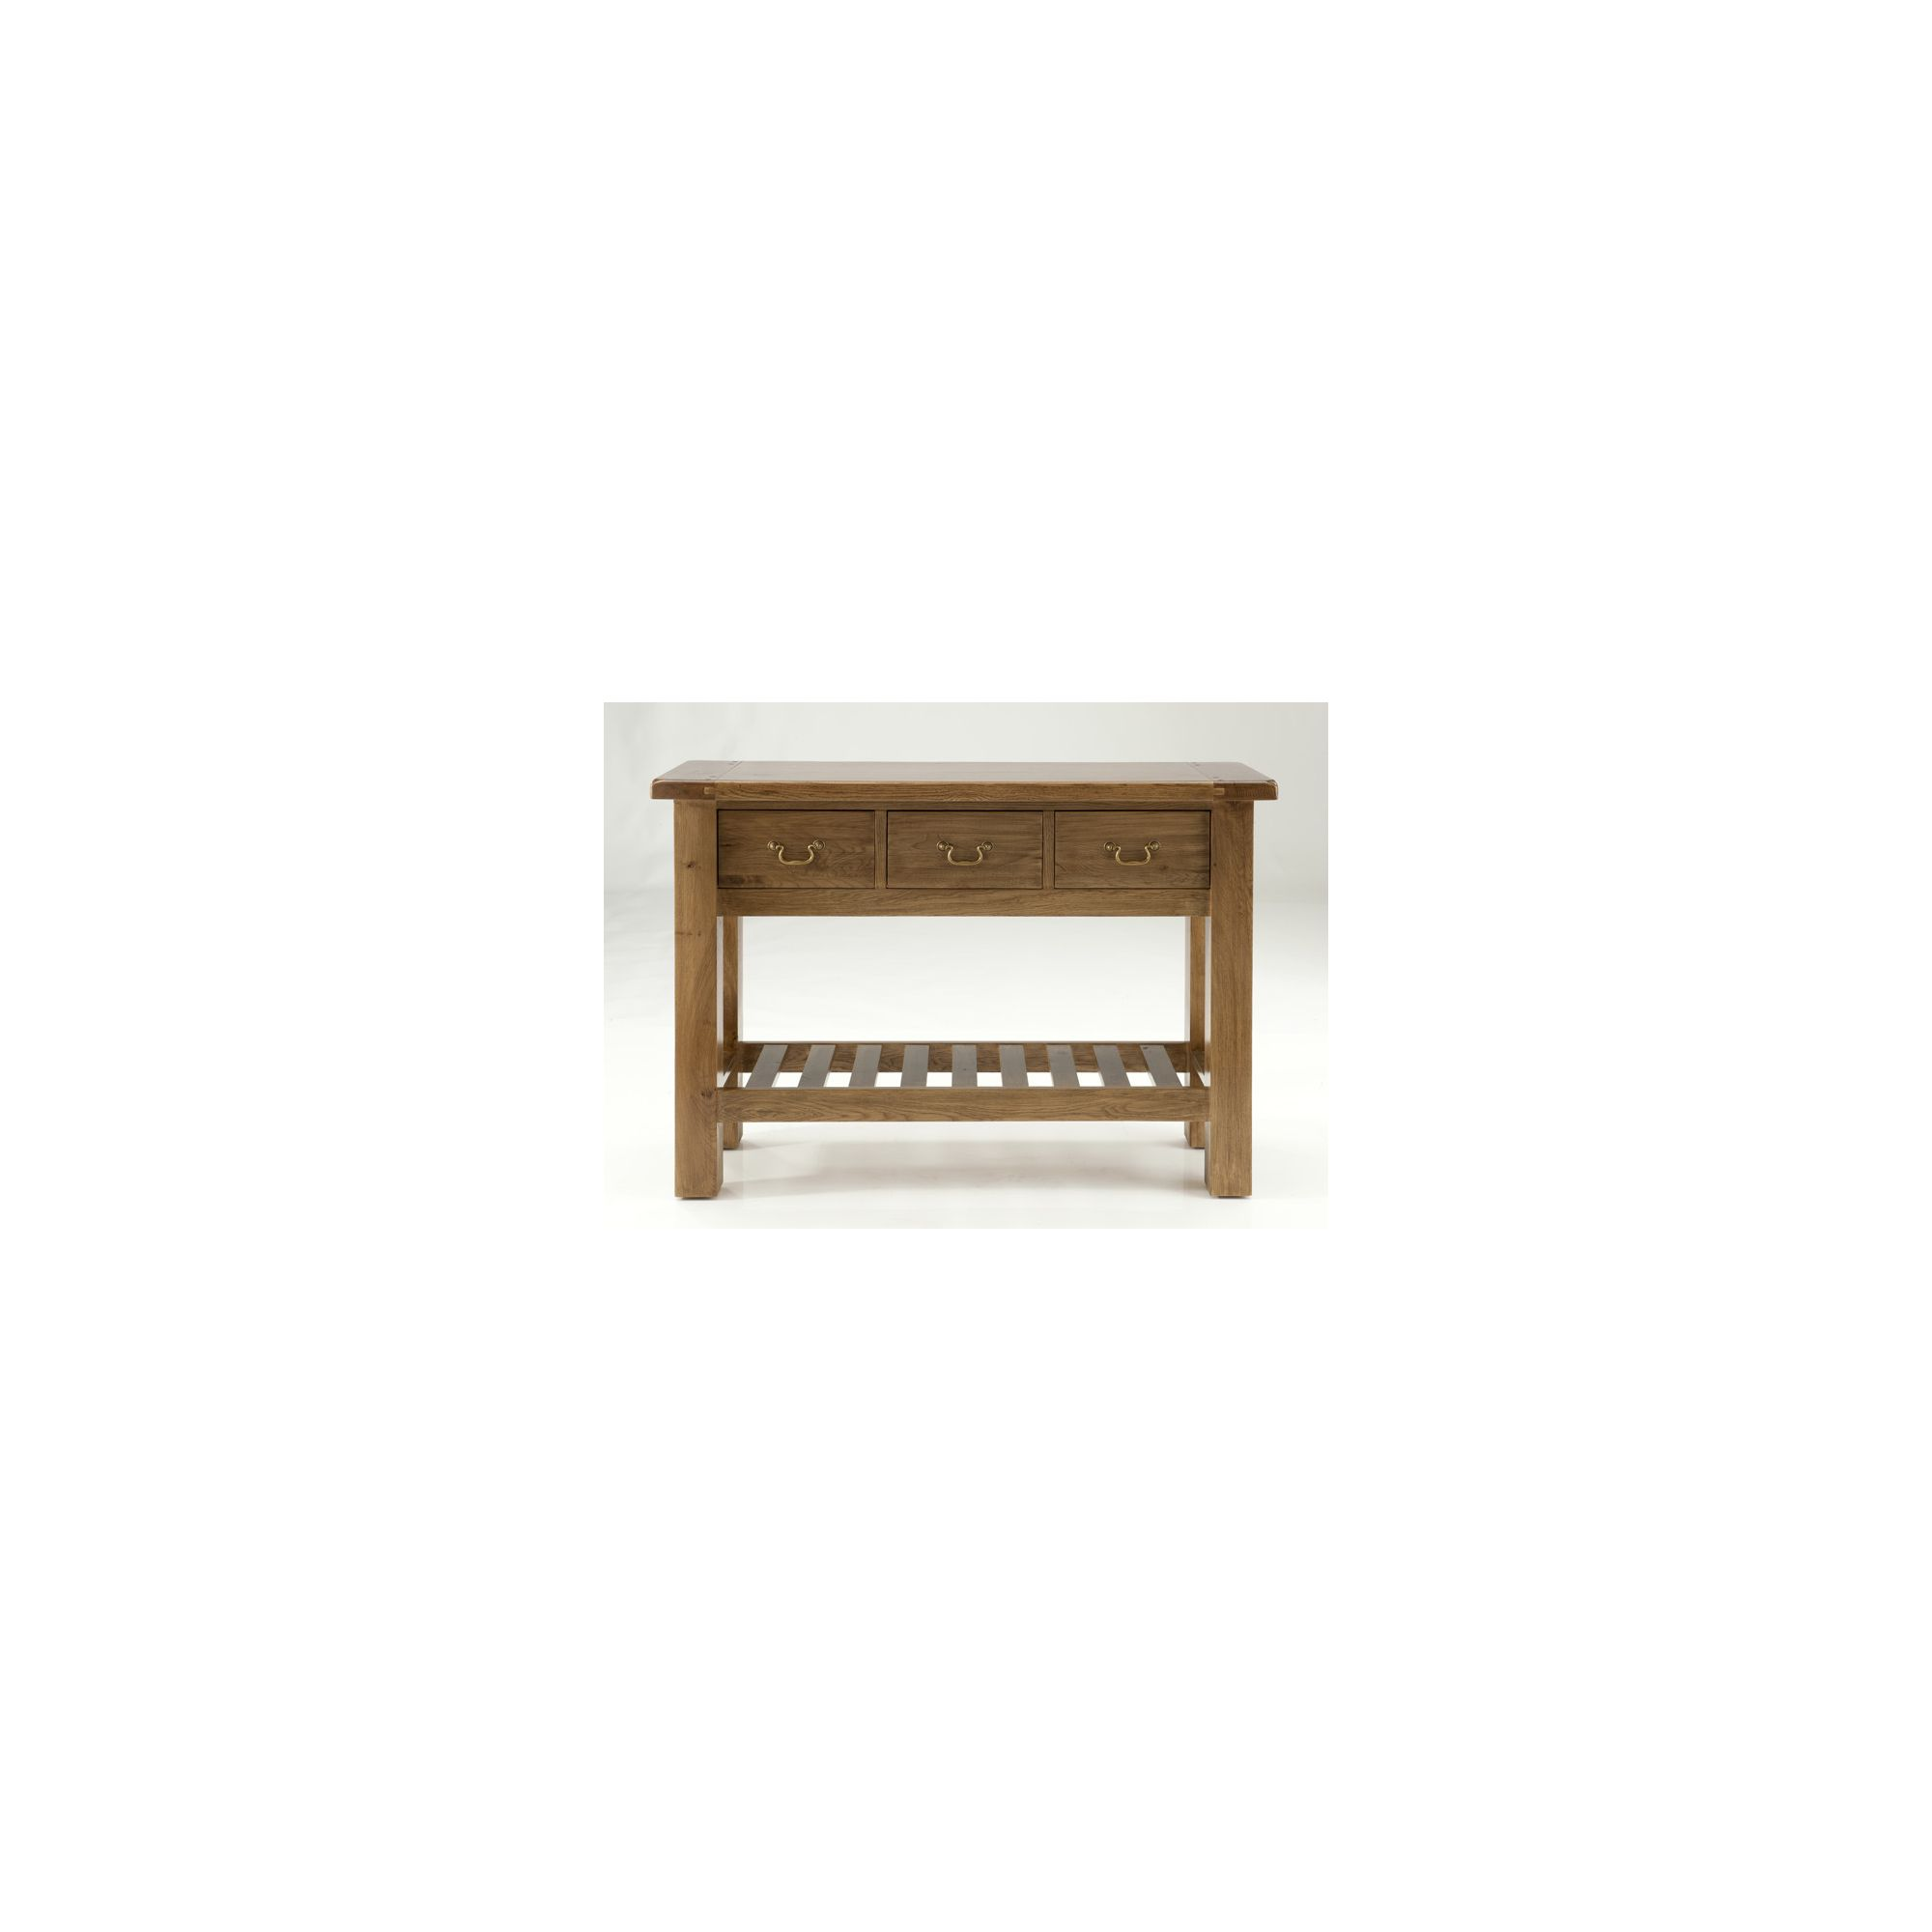 Originals Bretagne Console Table at Tesco Direct